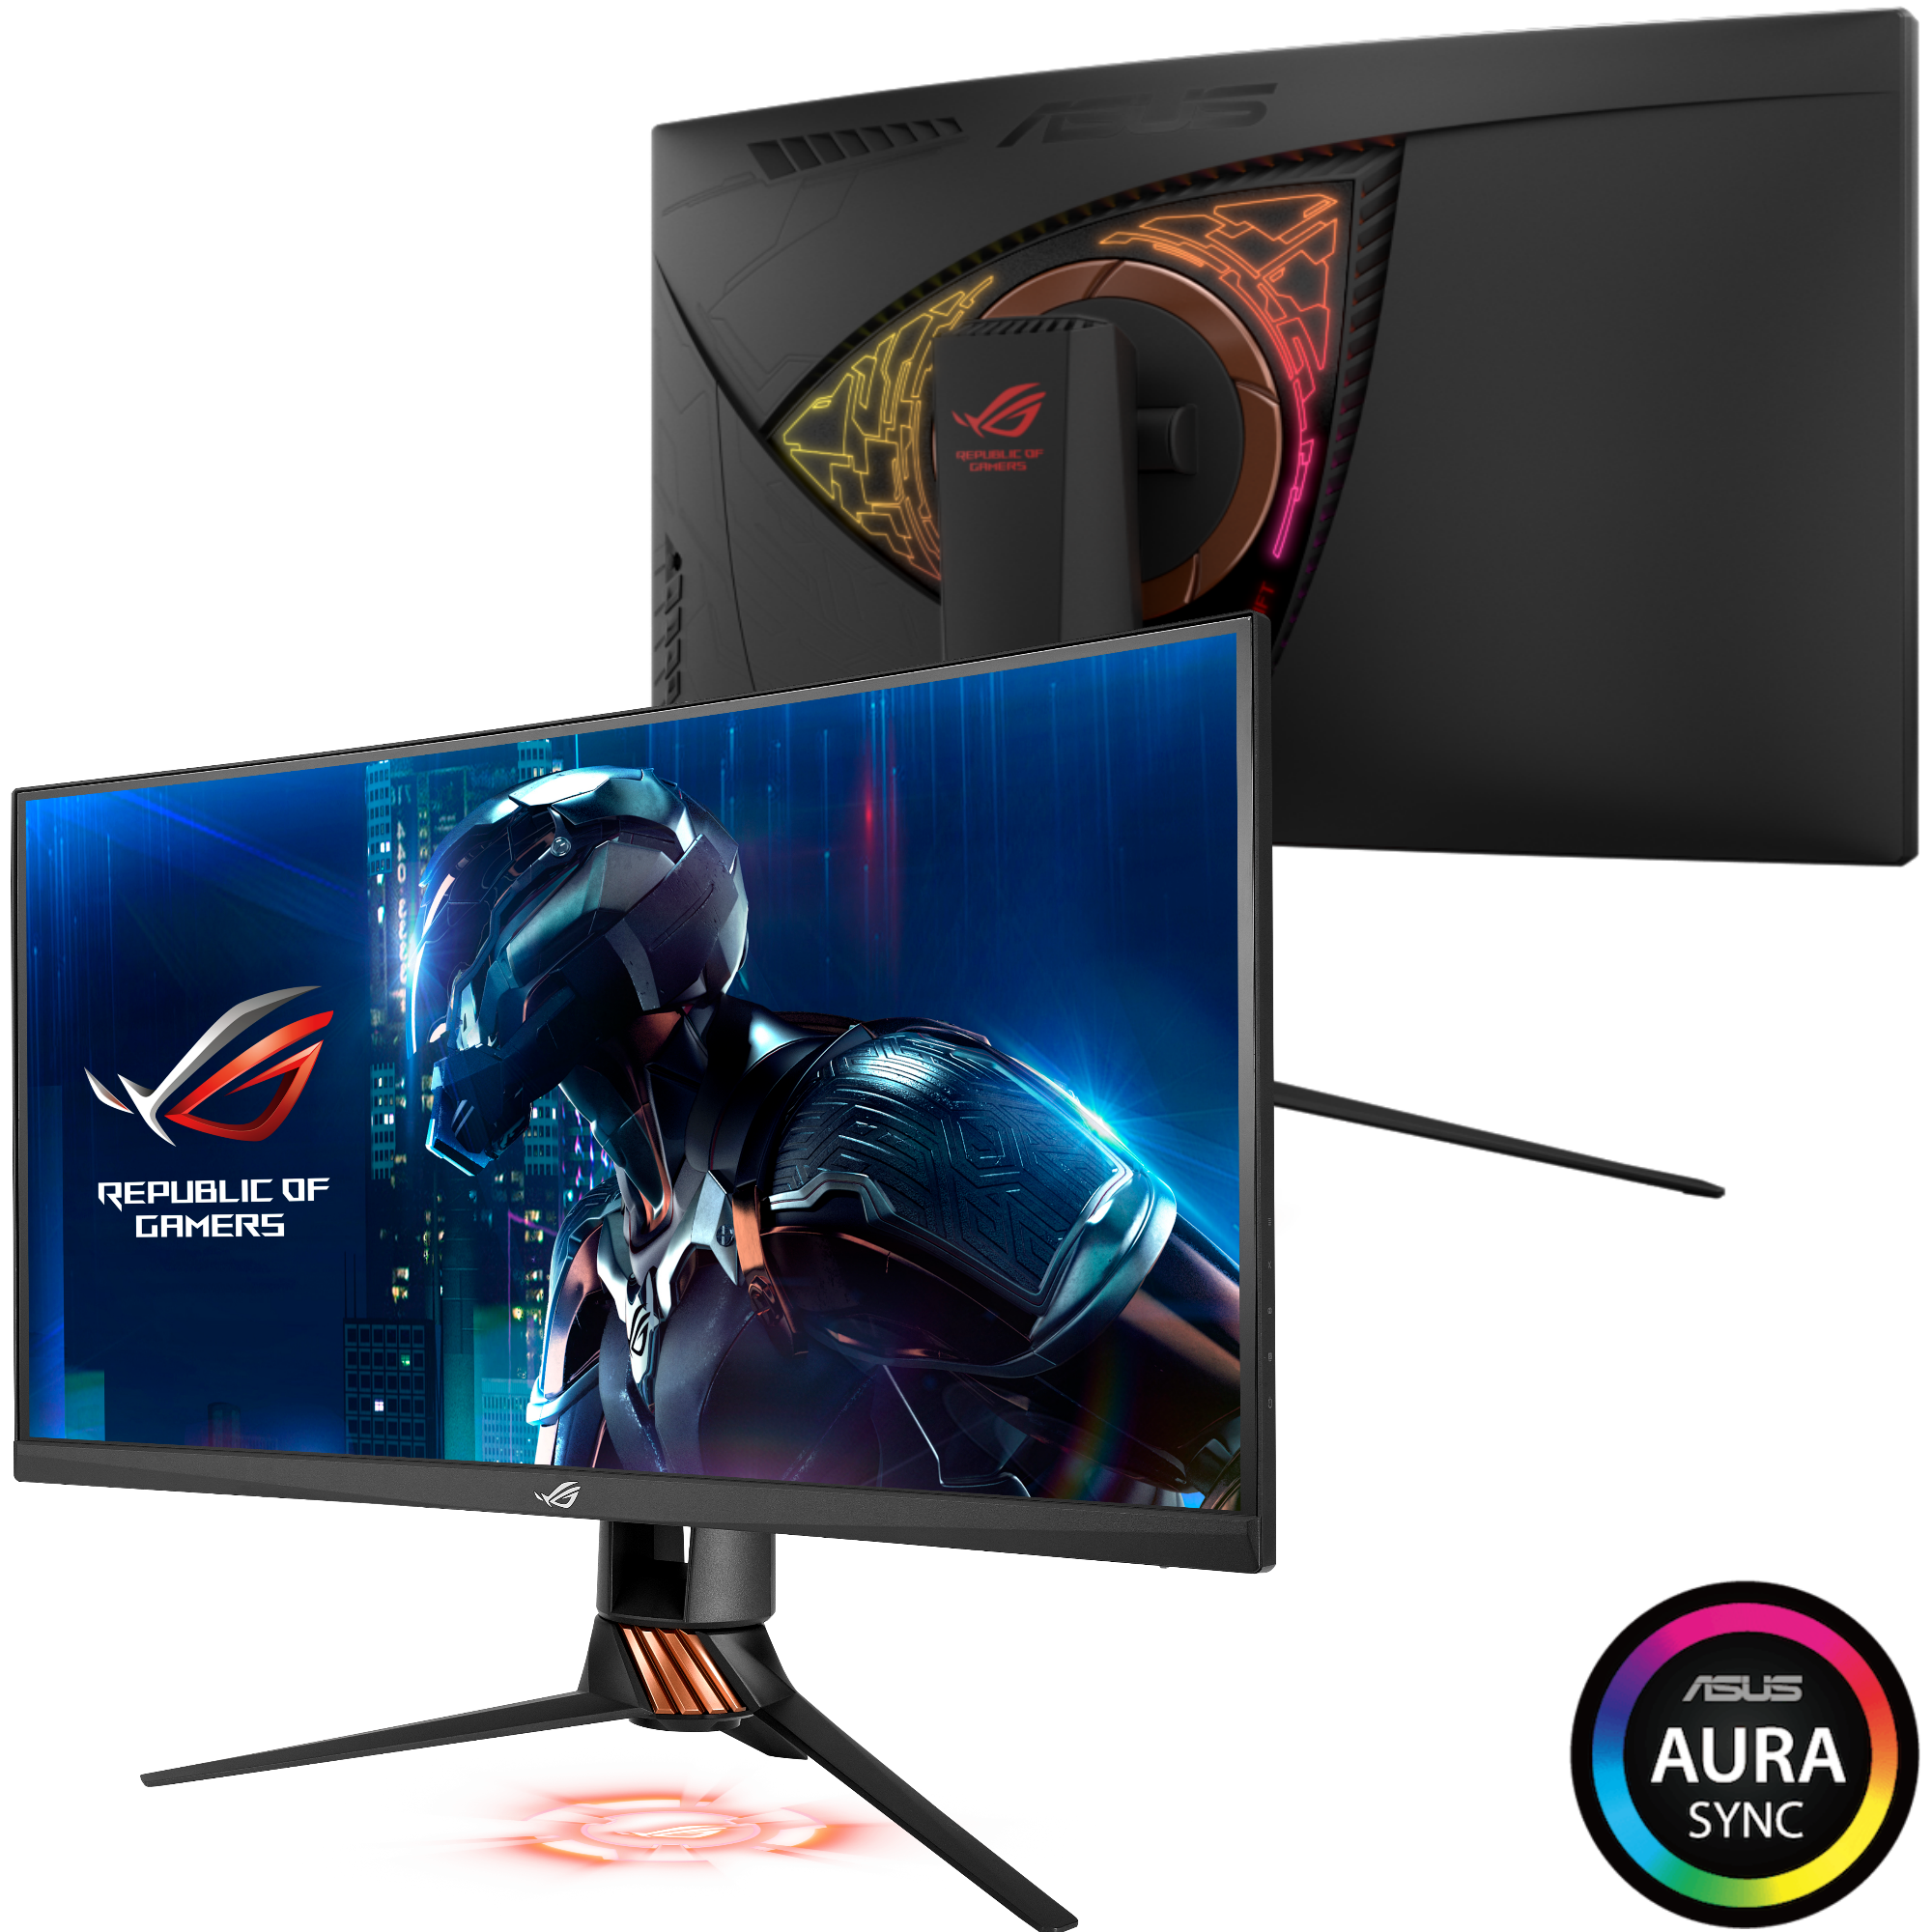 asus, curved monitor, gaming, gaming monitor, republic of gamers, rog, swift, pg27vq, ces 2017